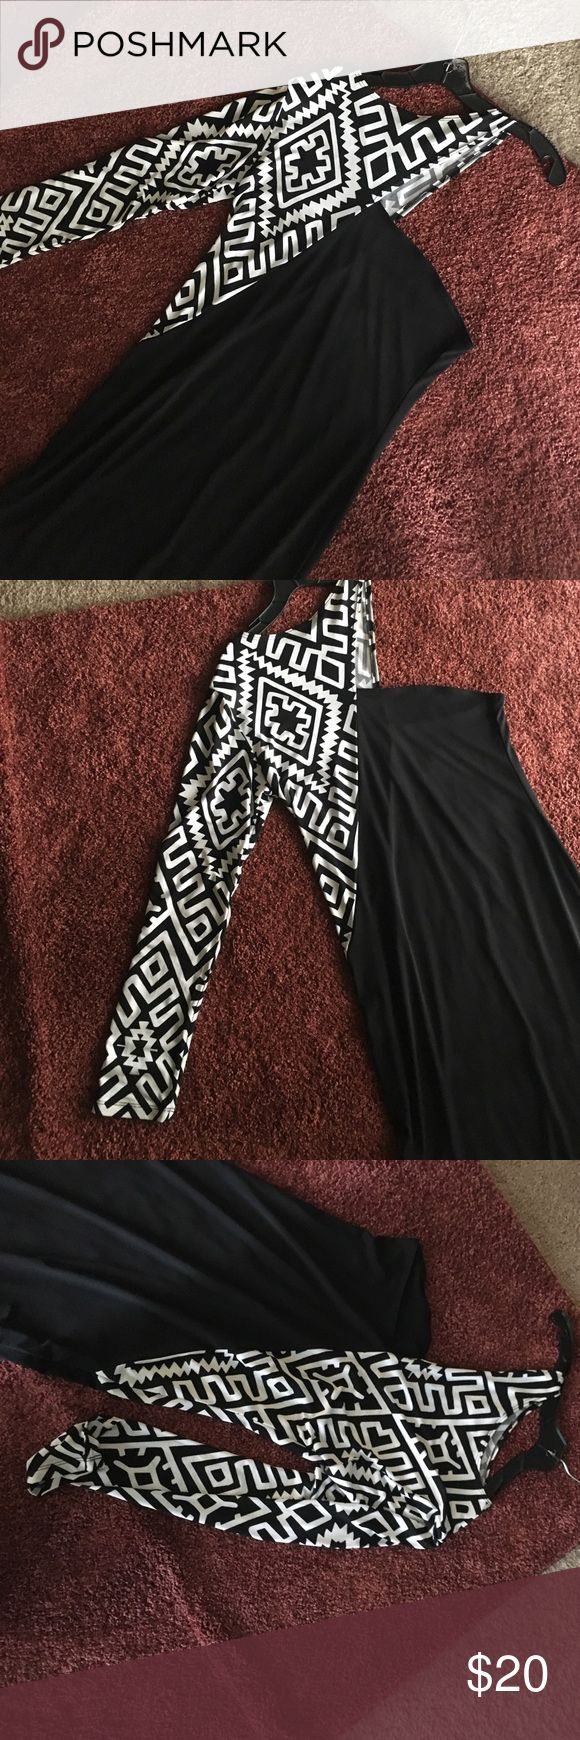 Black and white one sleeve bodycon dress! Chic and modern party dress! Classy but fashionable. Dress can fit 14-16. Worn once for a birthday Dresses Mini